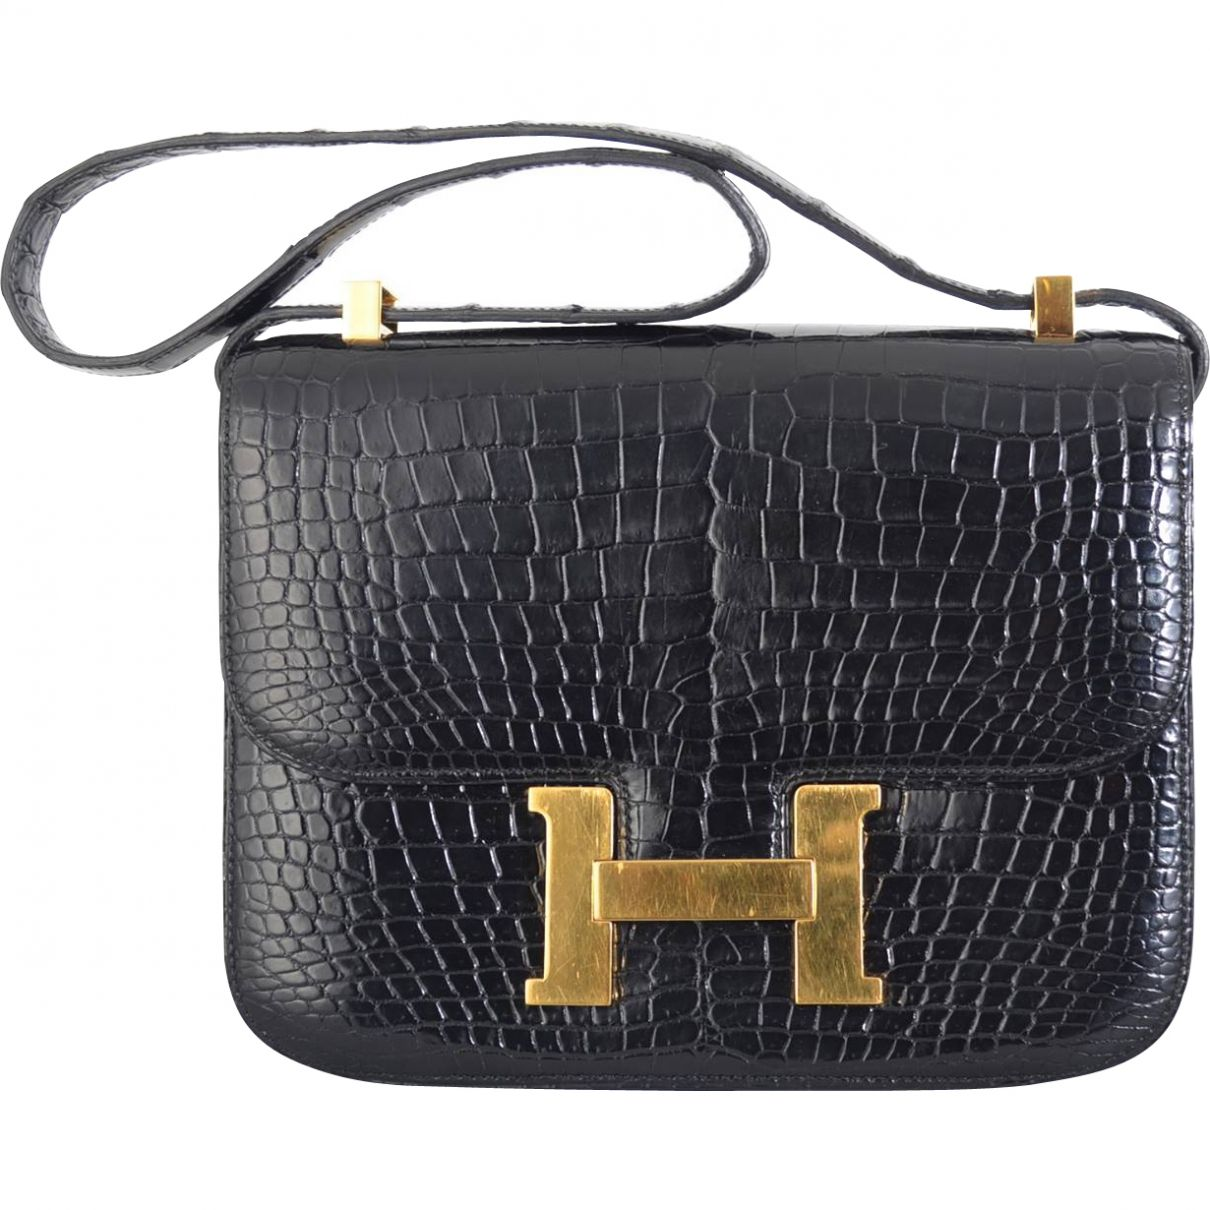 Constance leather crossbody bag HERMÈS Black